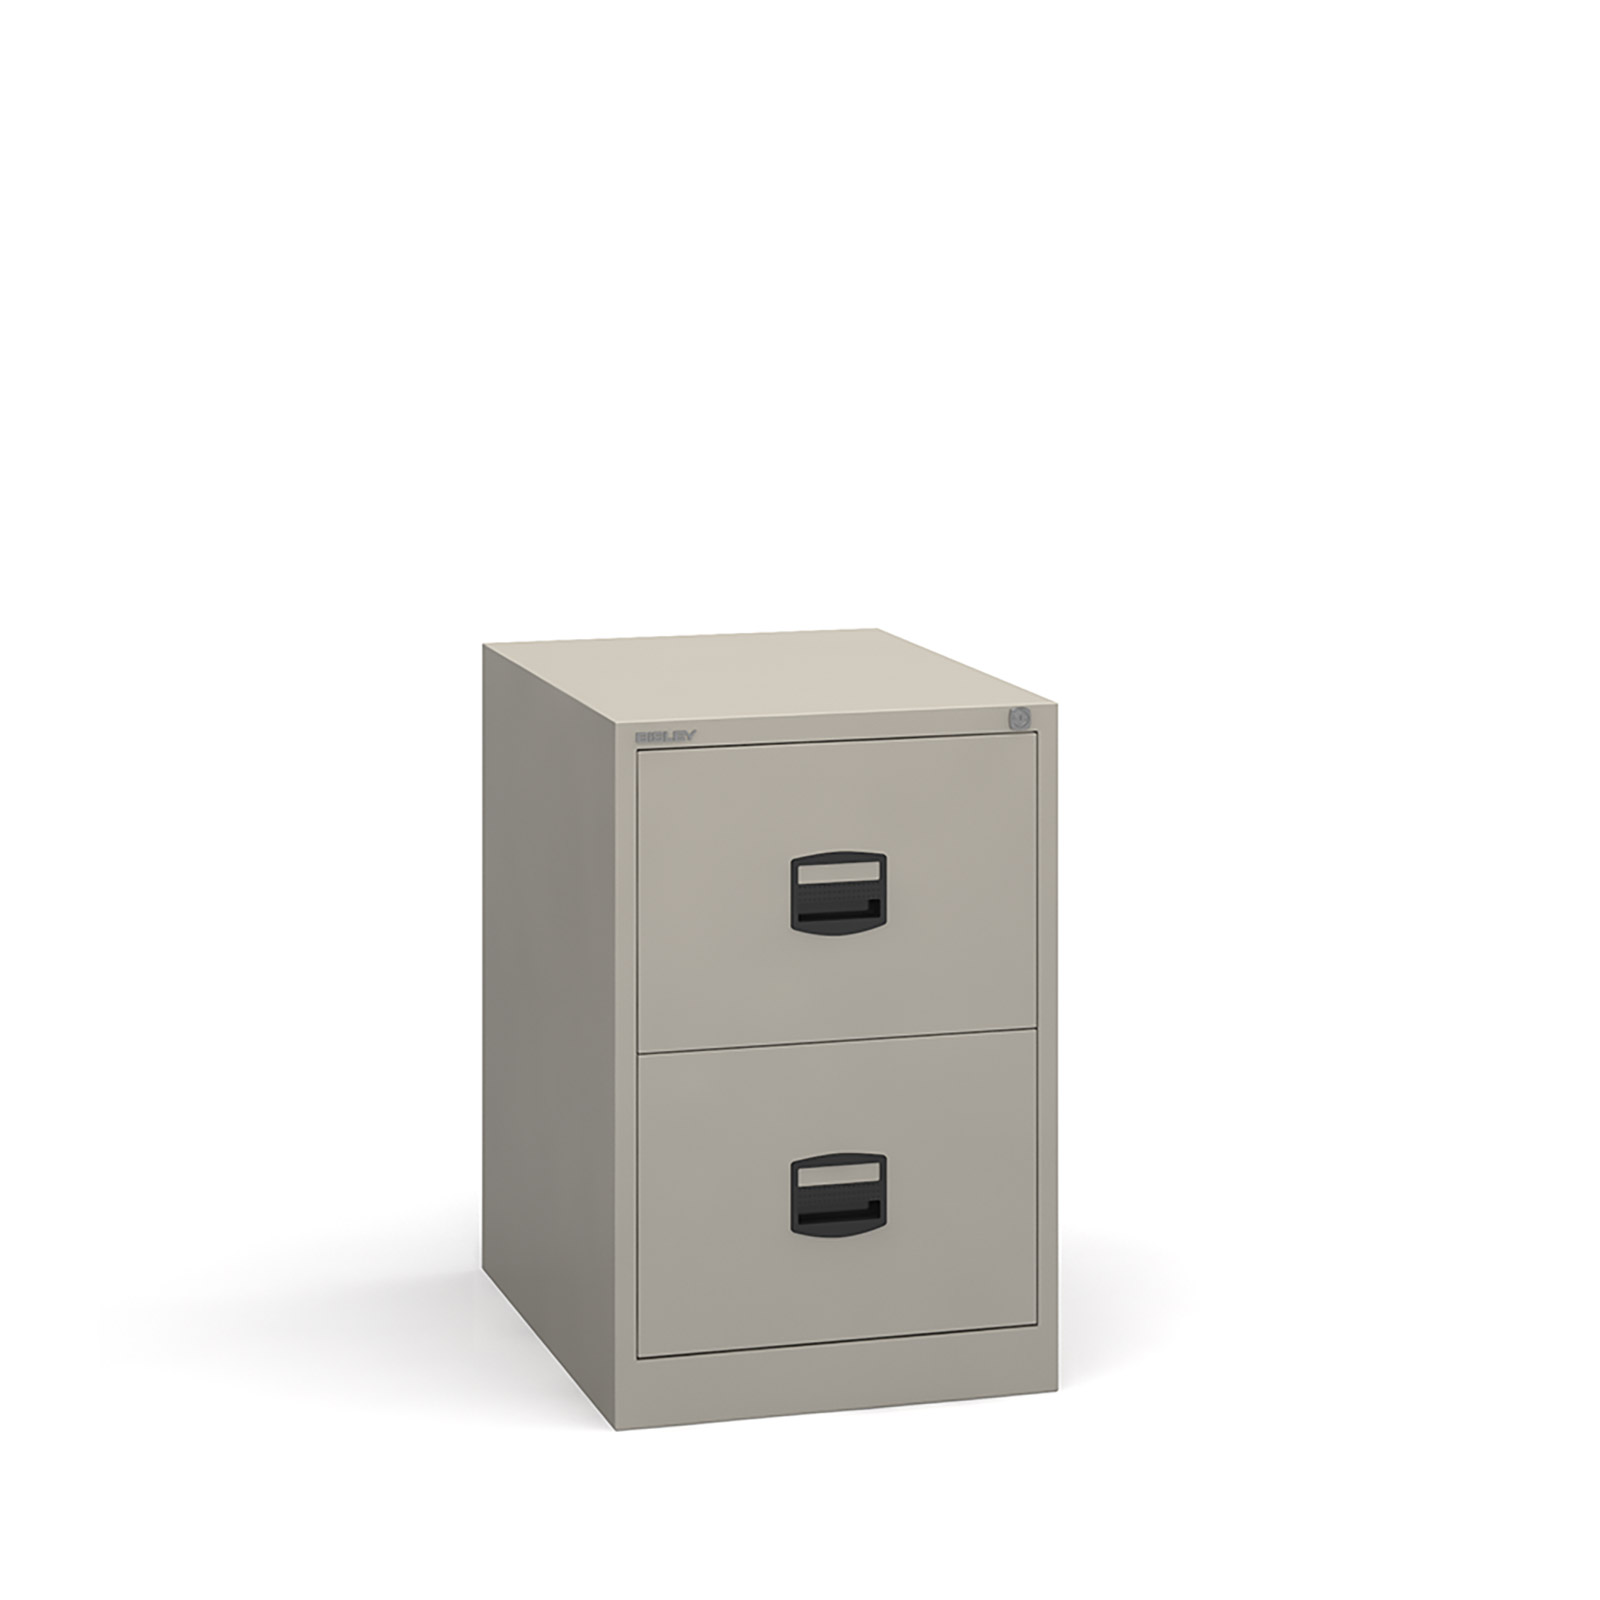 2 drawer contract filing cabinet in Grey